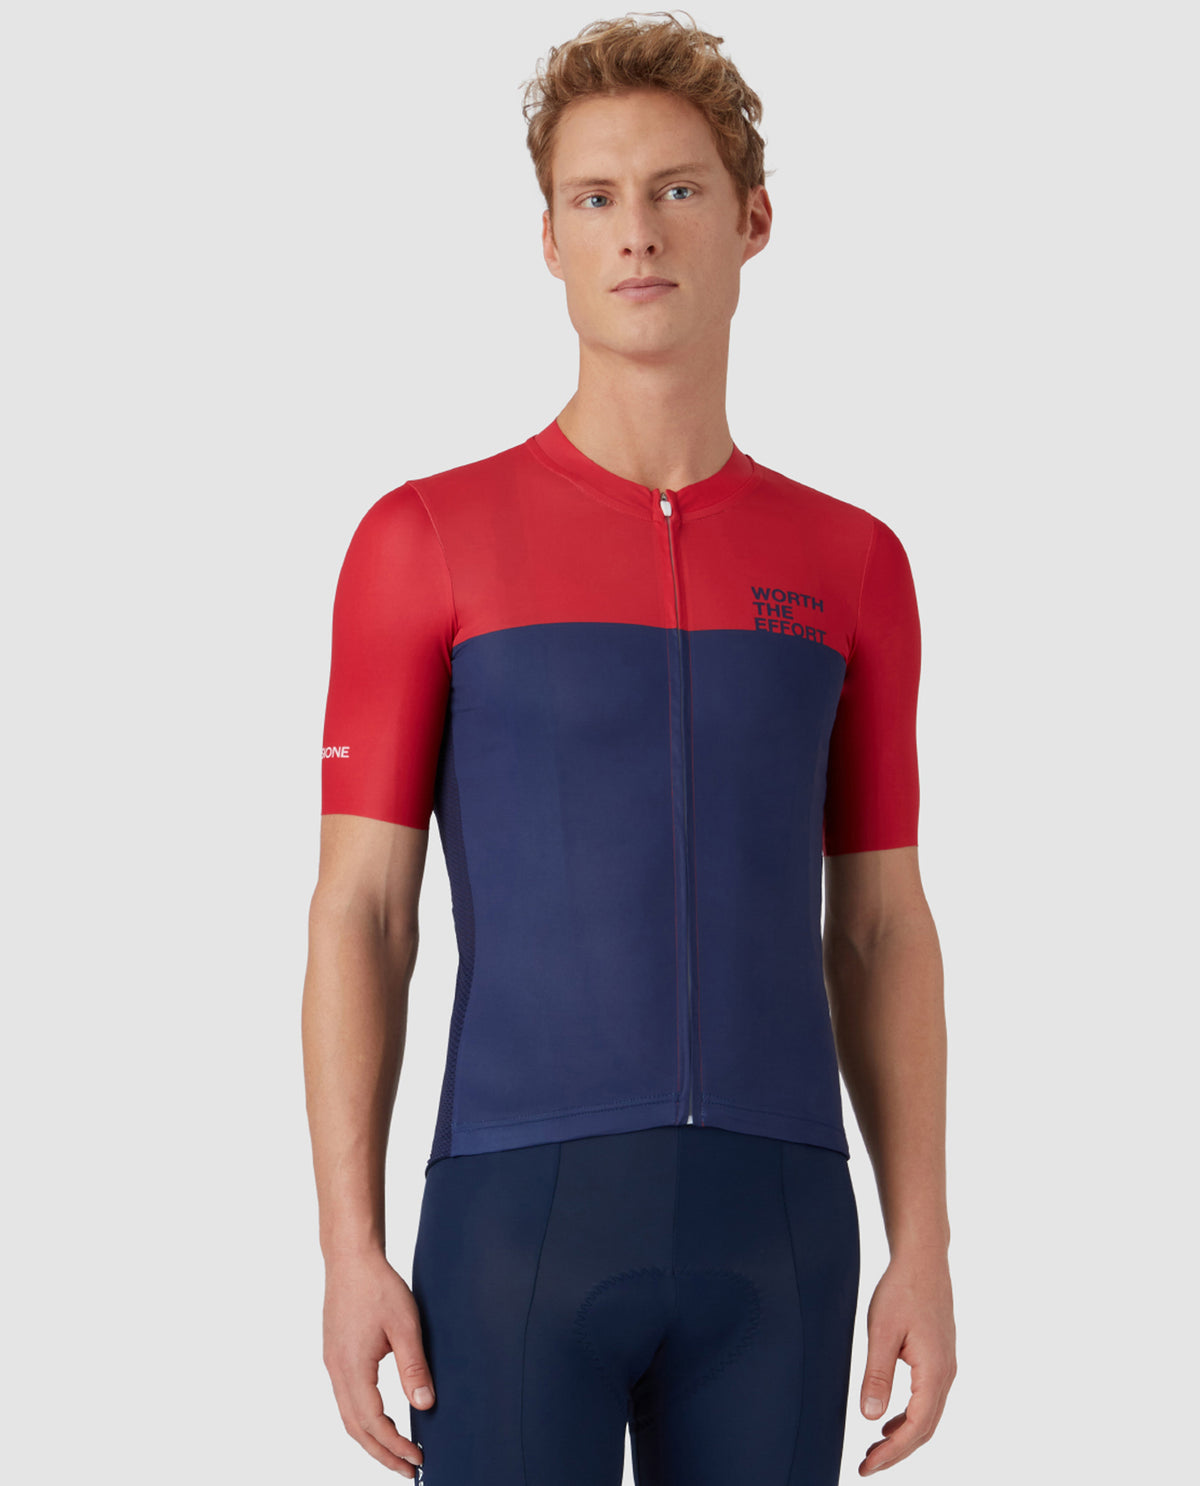 Duo Jersey Blue/Red